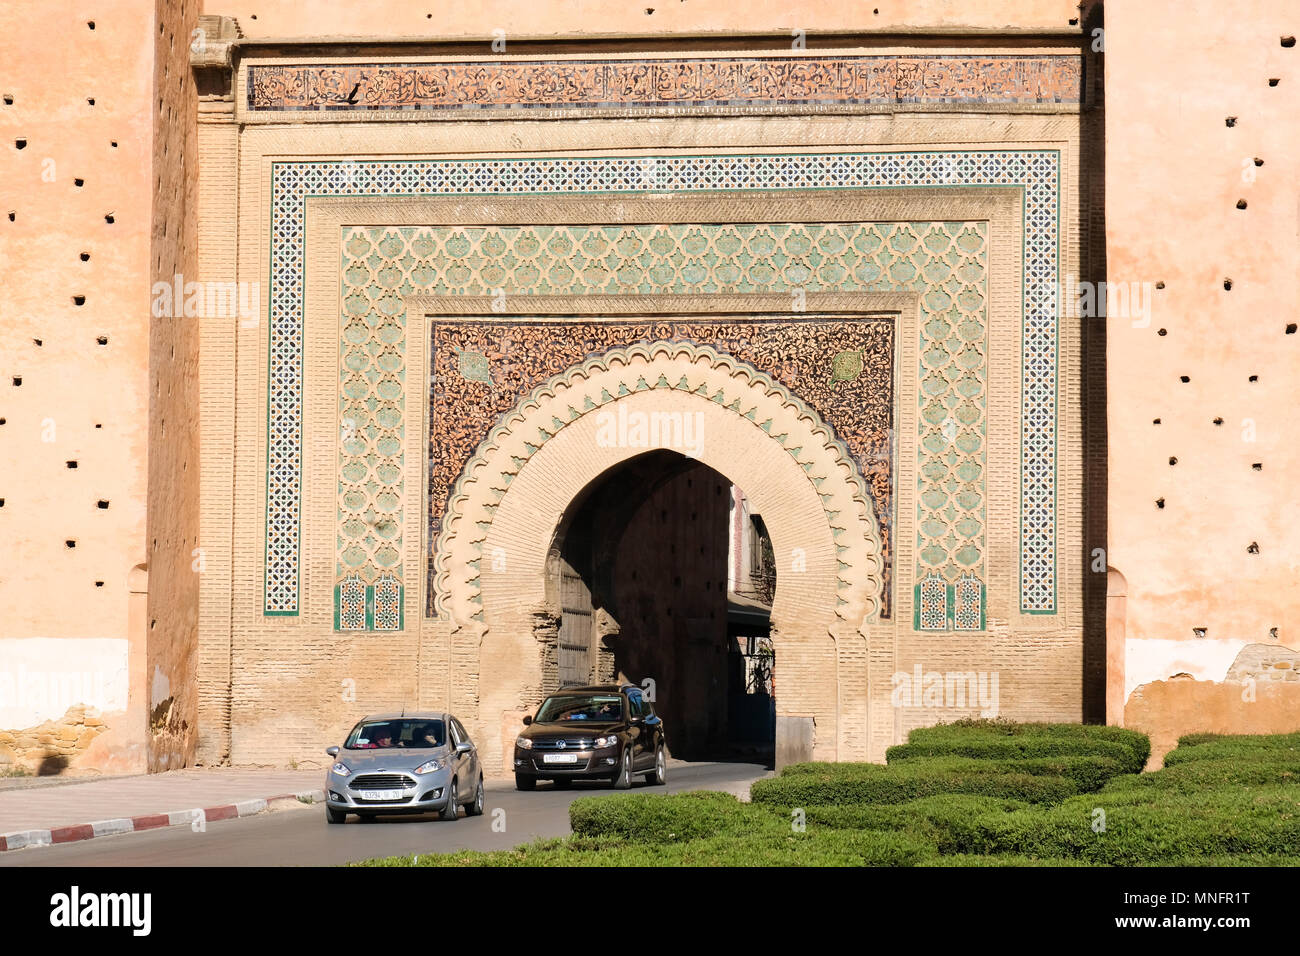 Meknes old city gate with traditional architecture - Morocco - Stock Image